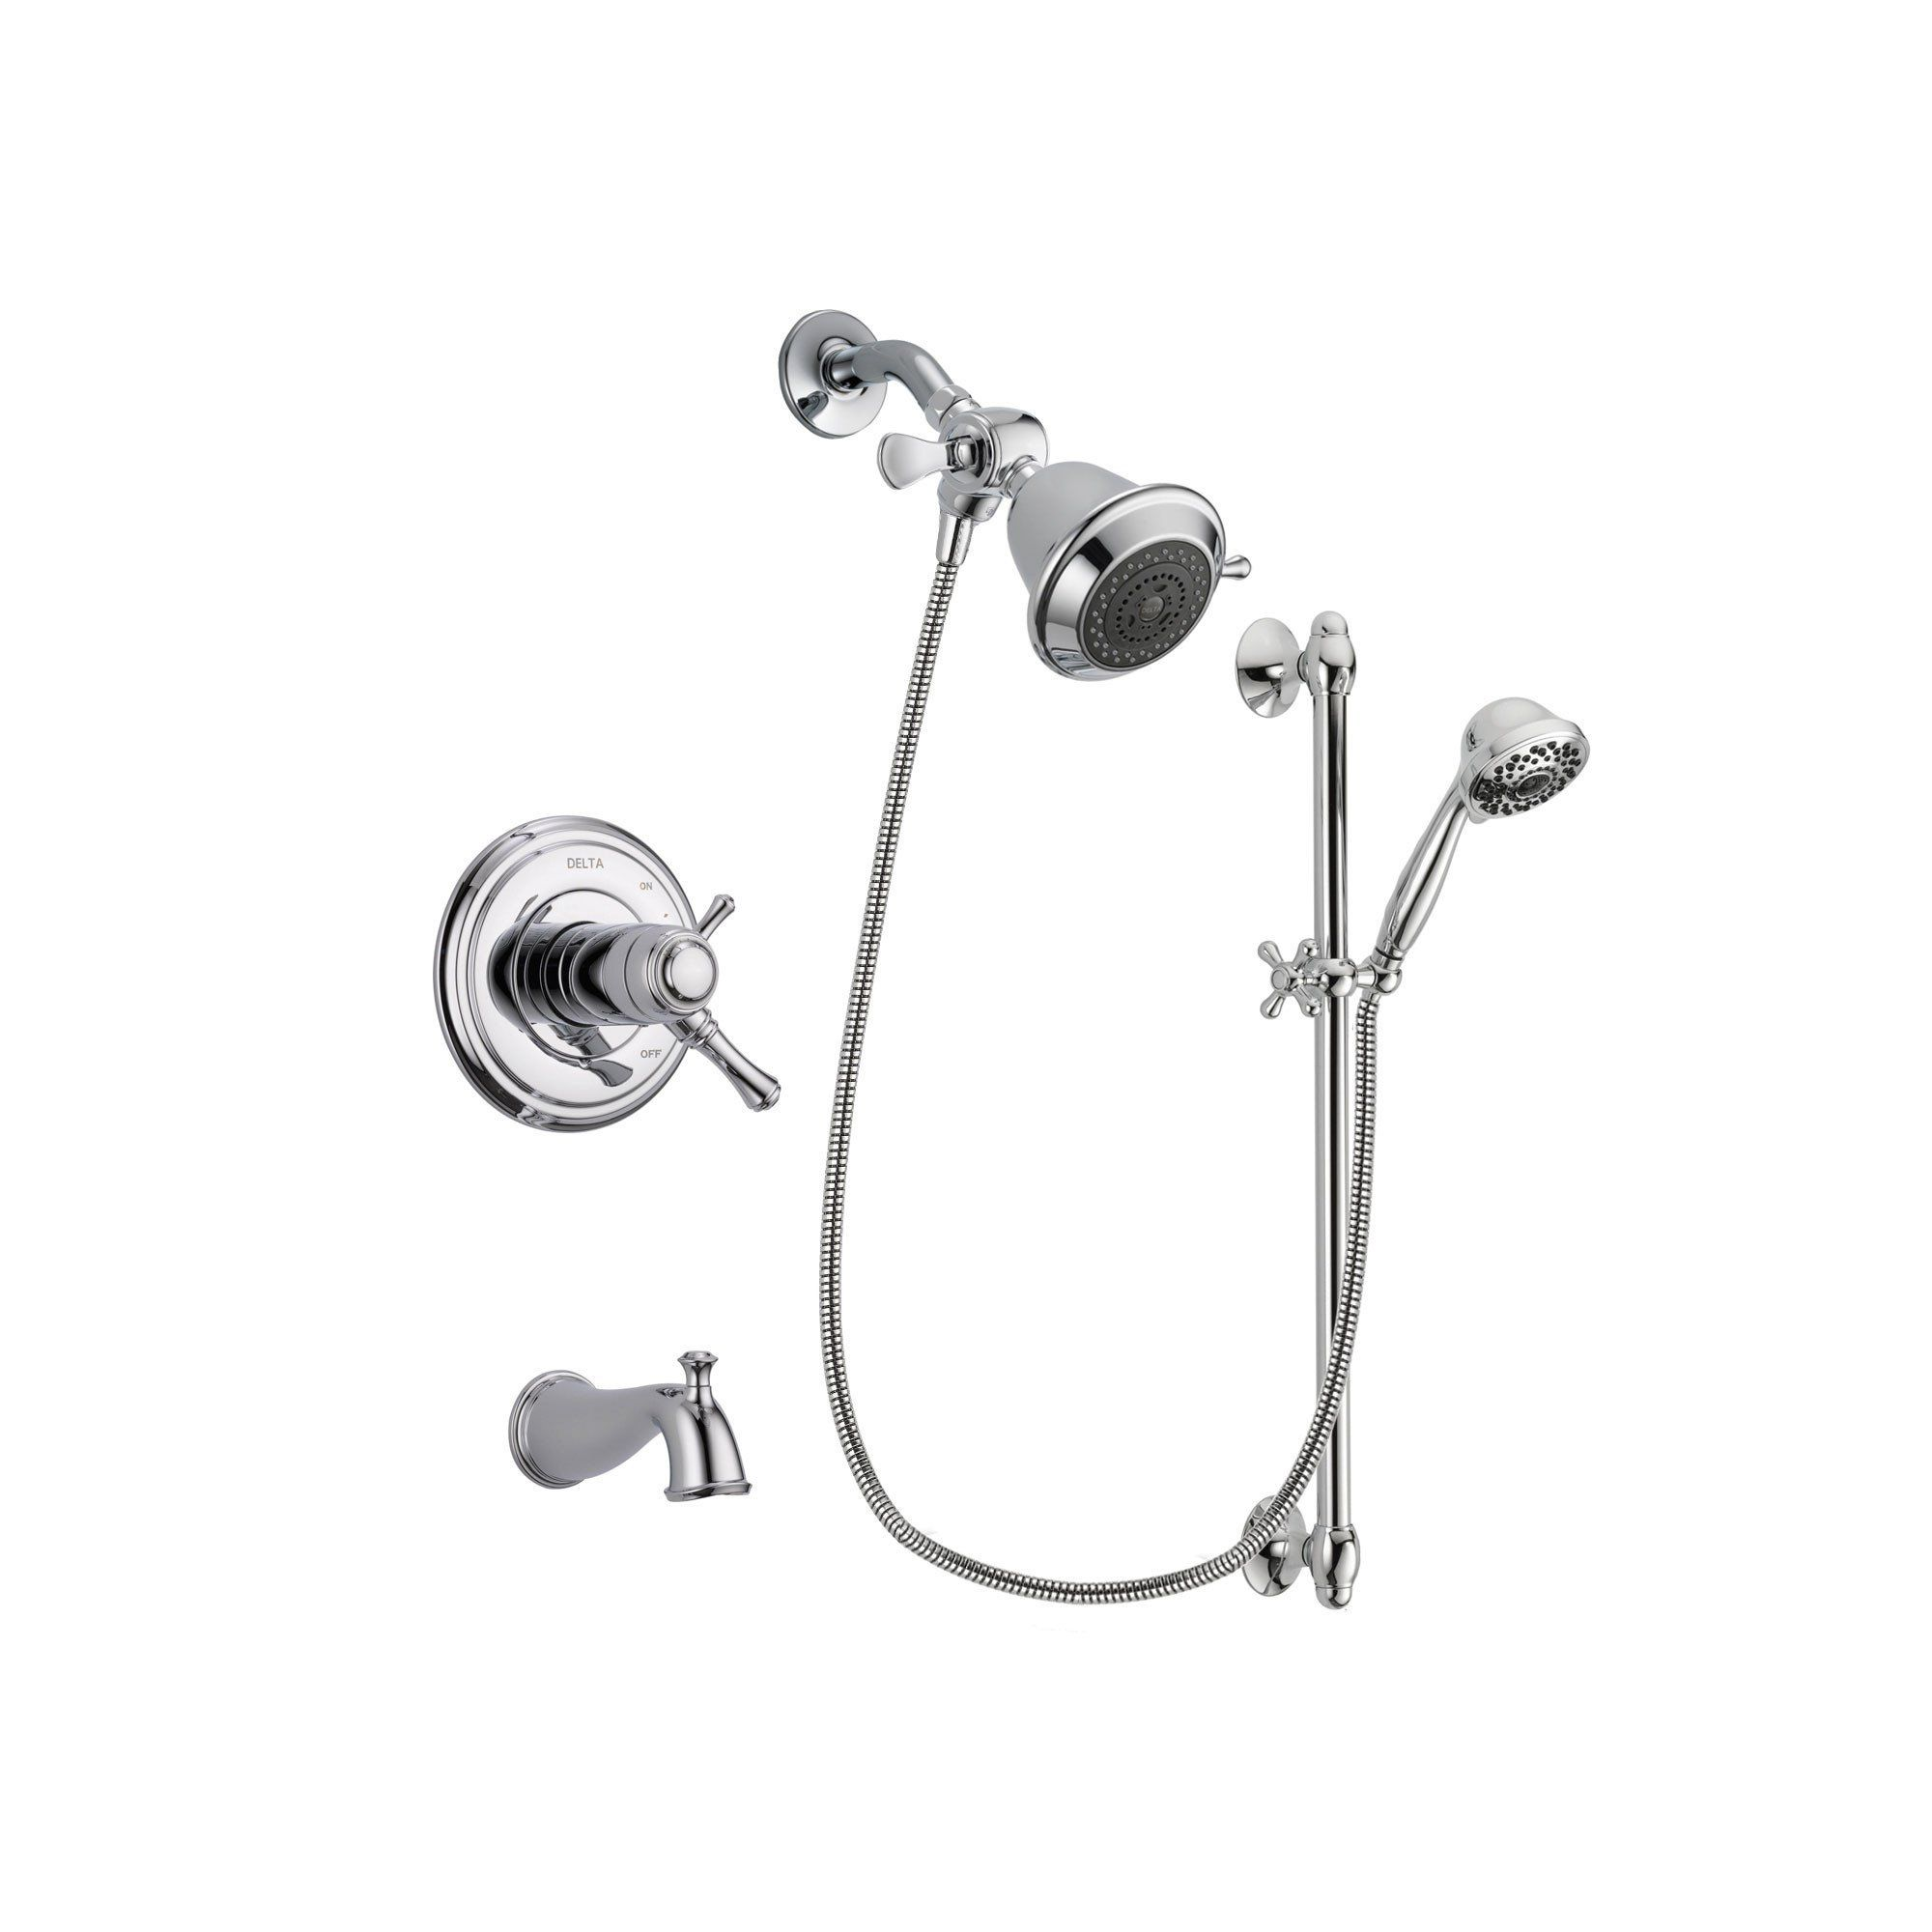 dual shower head bar. delta trinsic chrome finish dual control tub and shower faucet system package with inch head handheld sprayer slide bar includes